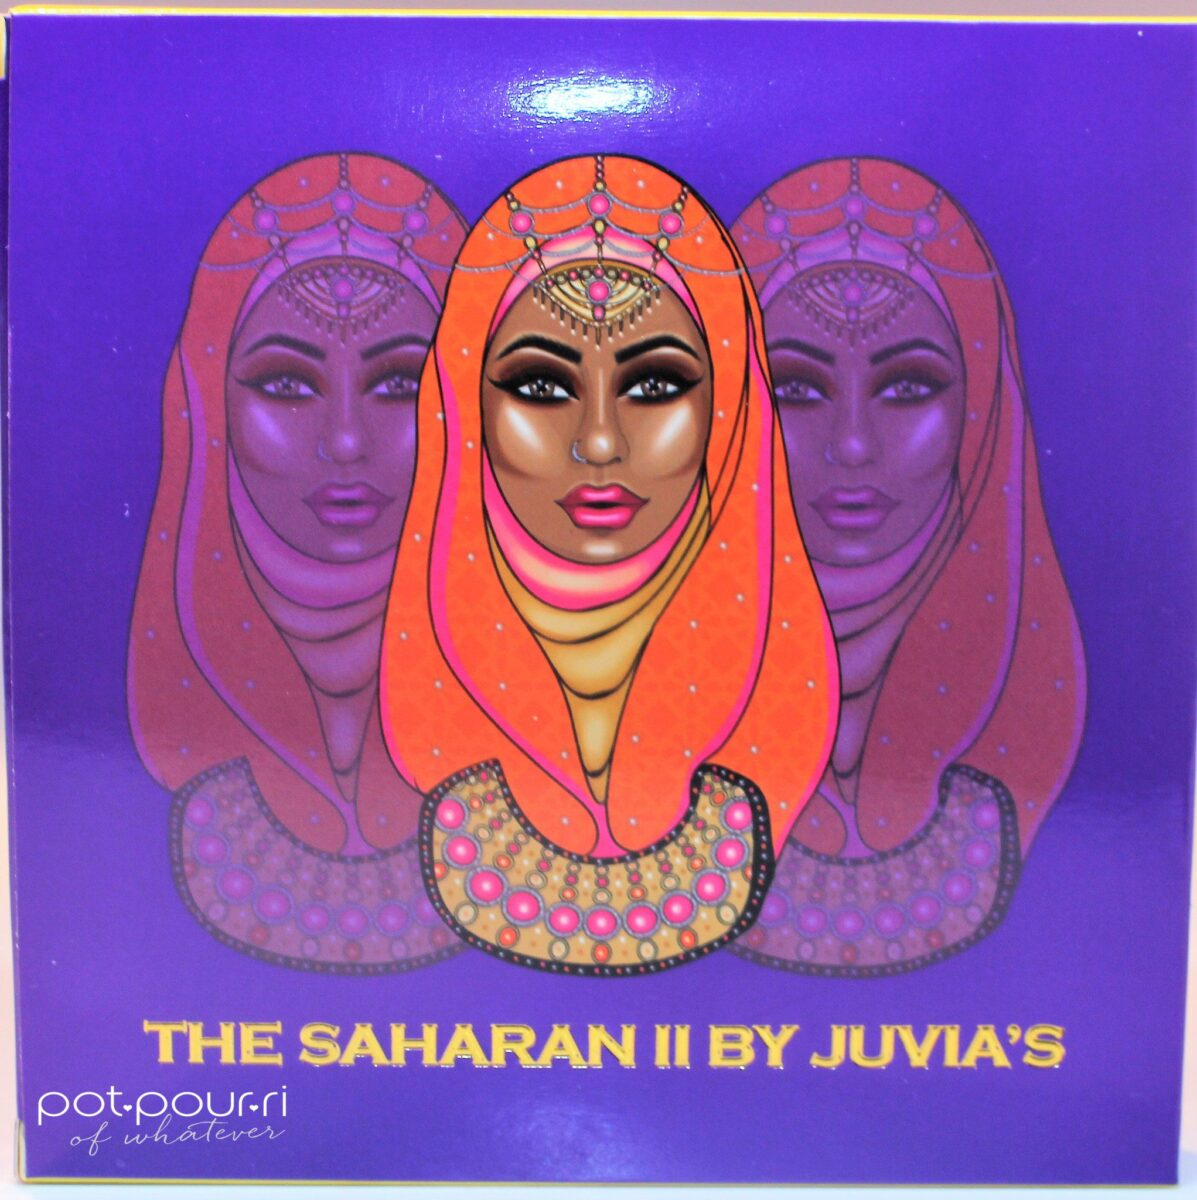 Juvia's Saharan 11 Eyeshadow Palette packaging